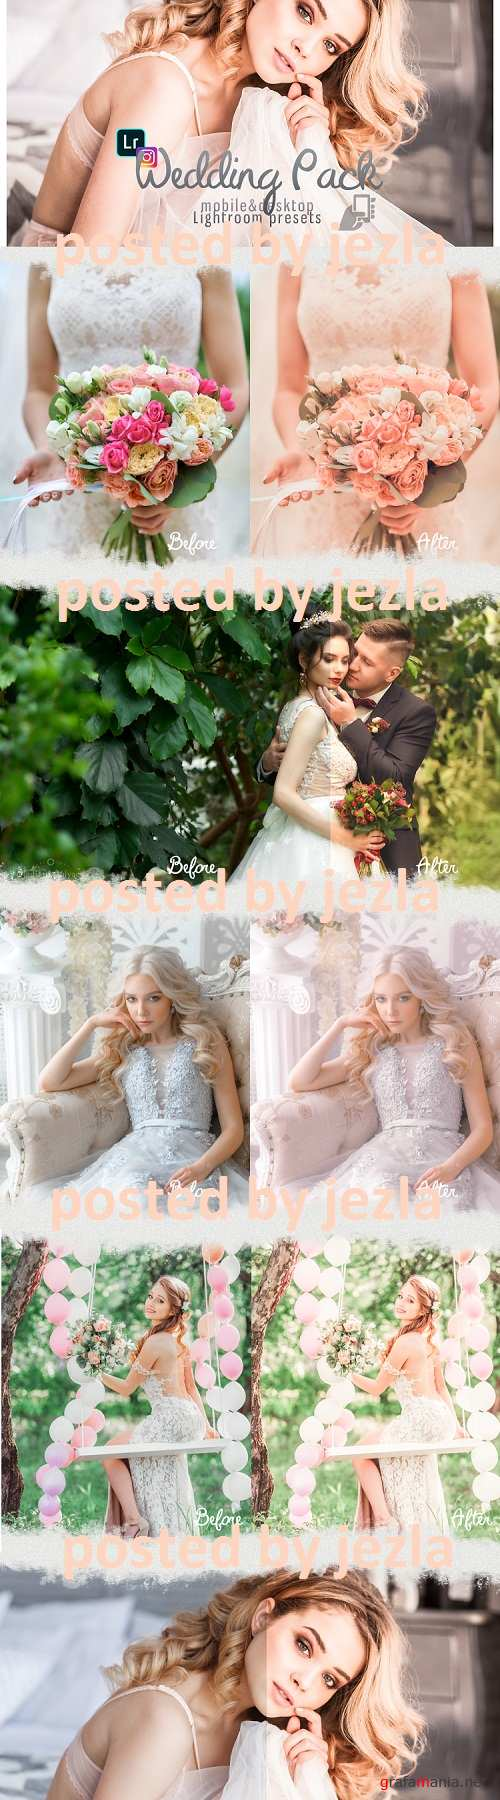 Wedding presets lightroom mobile pc professional pack - 250977